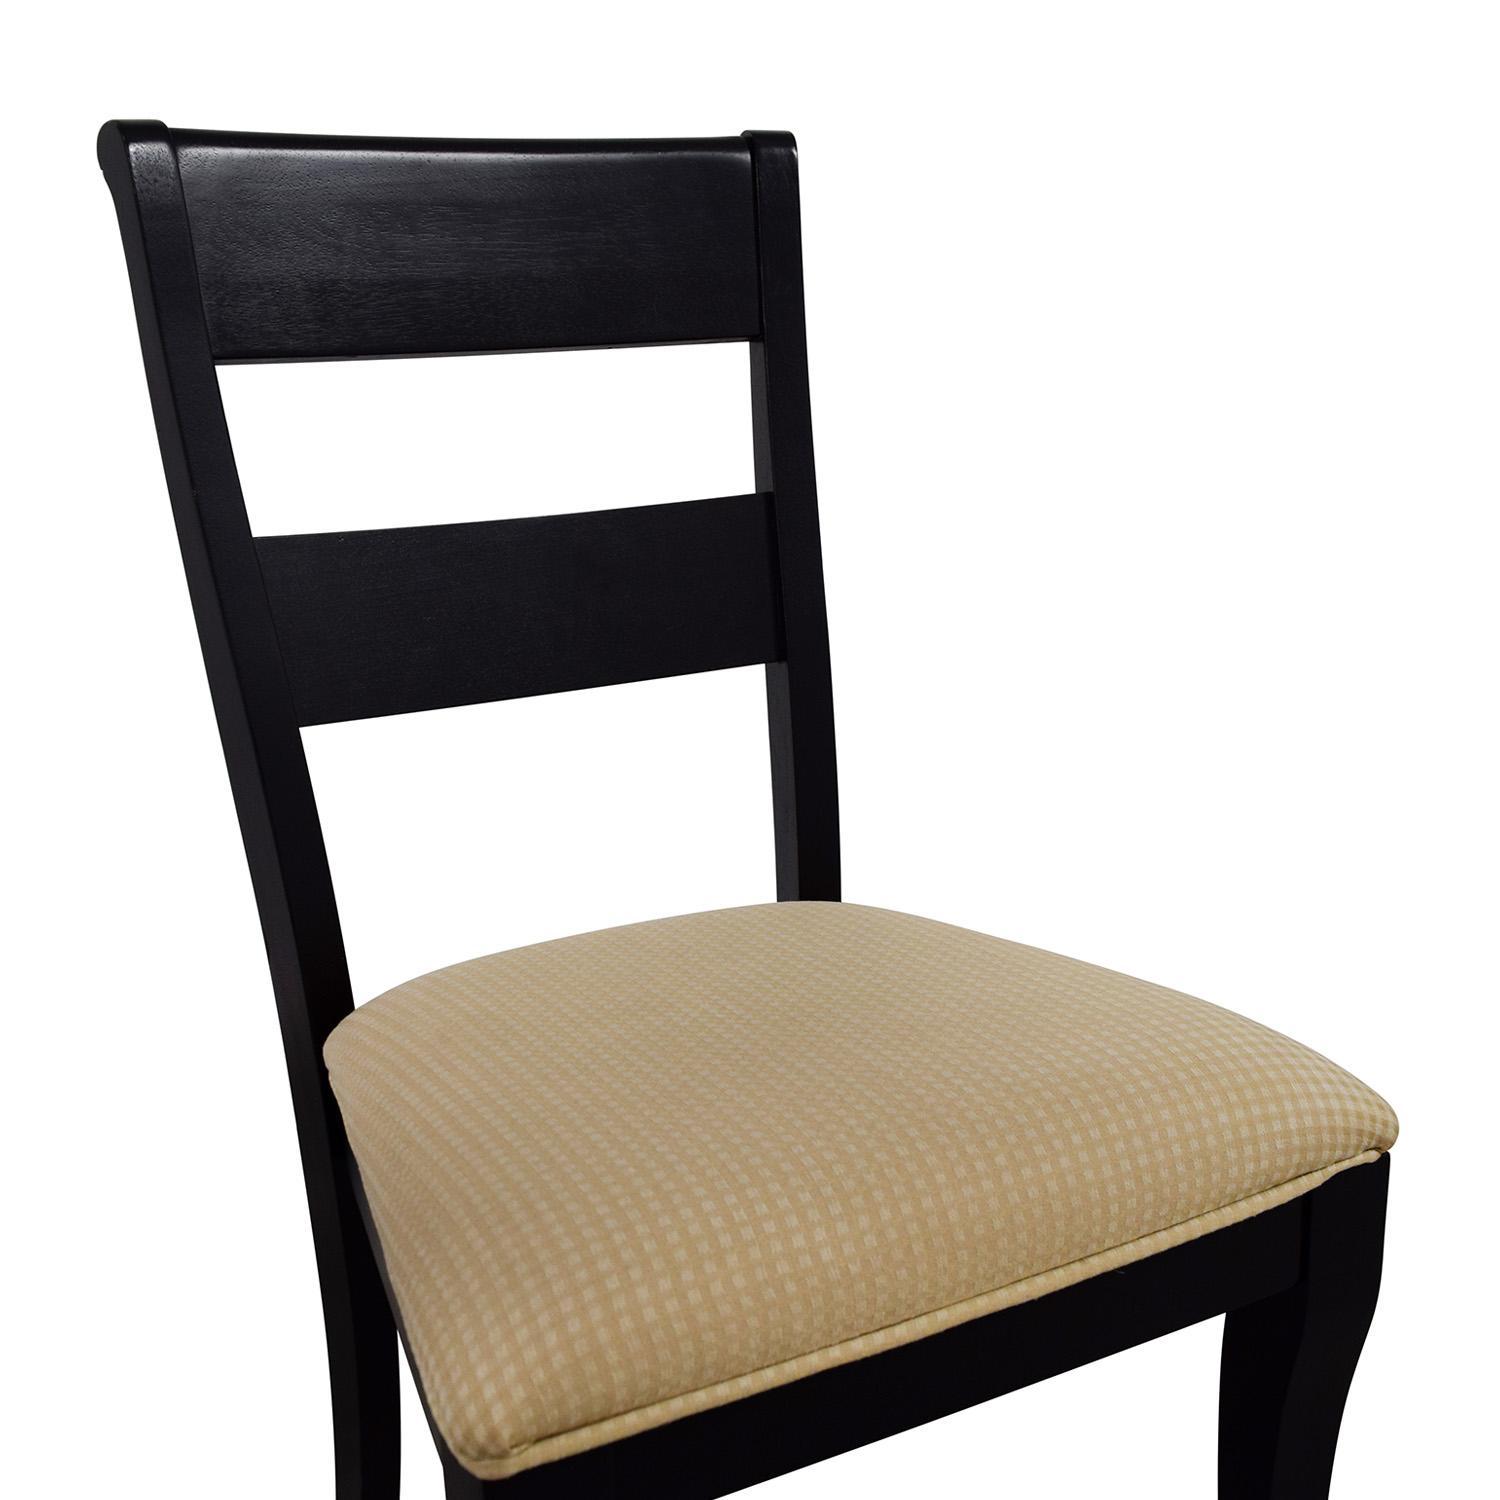 raymour and flanigan chairs clear for wedding 90 off black